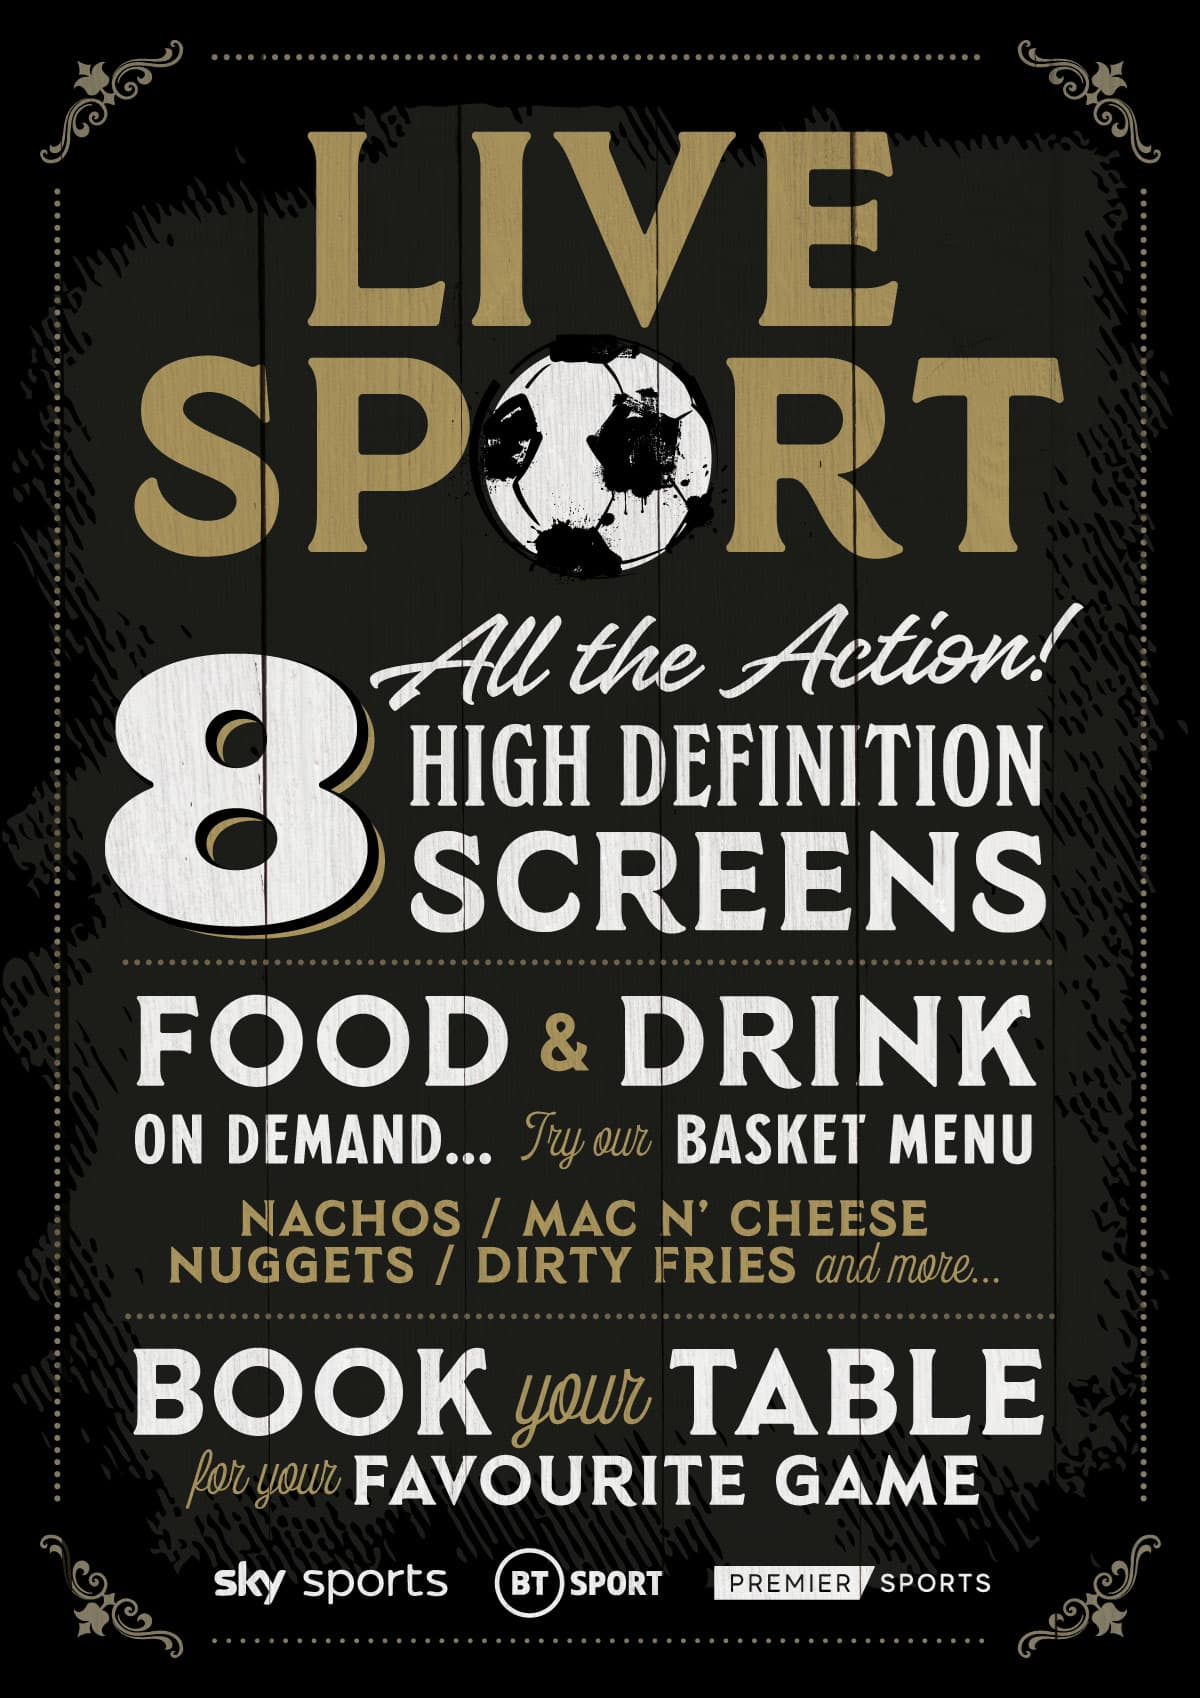 Live Sports At The Black Bull